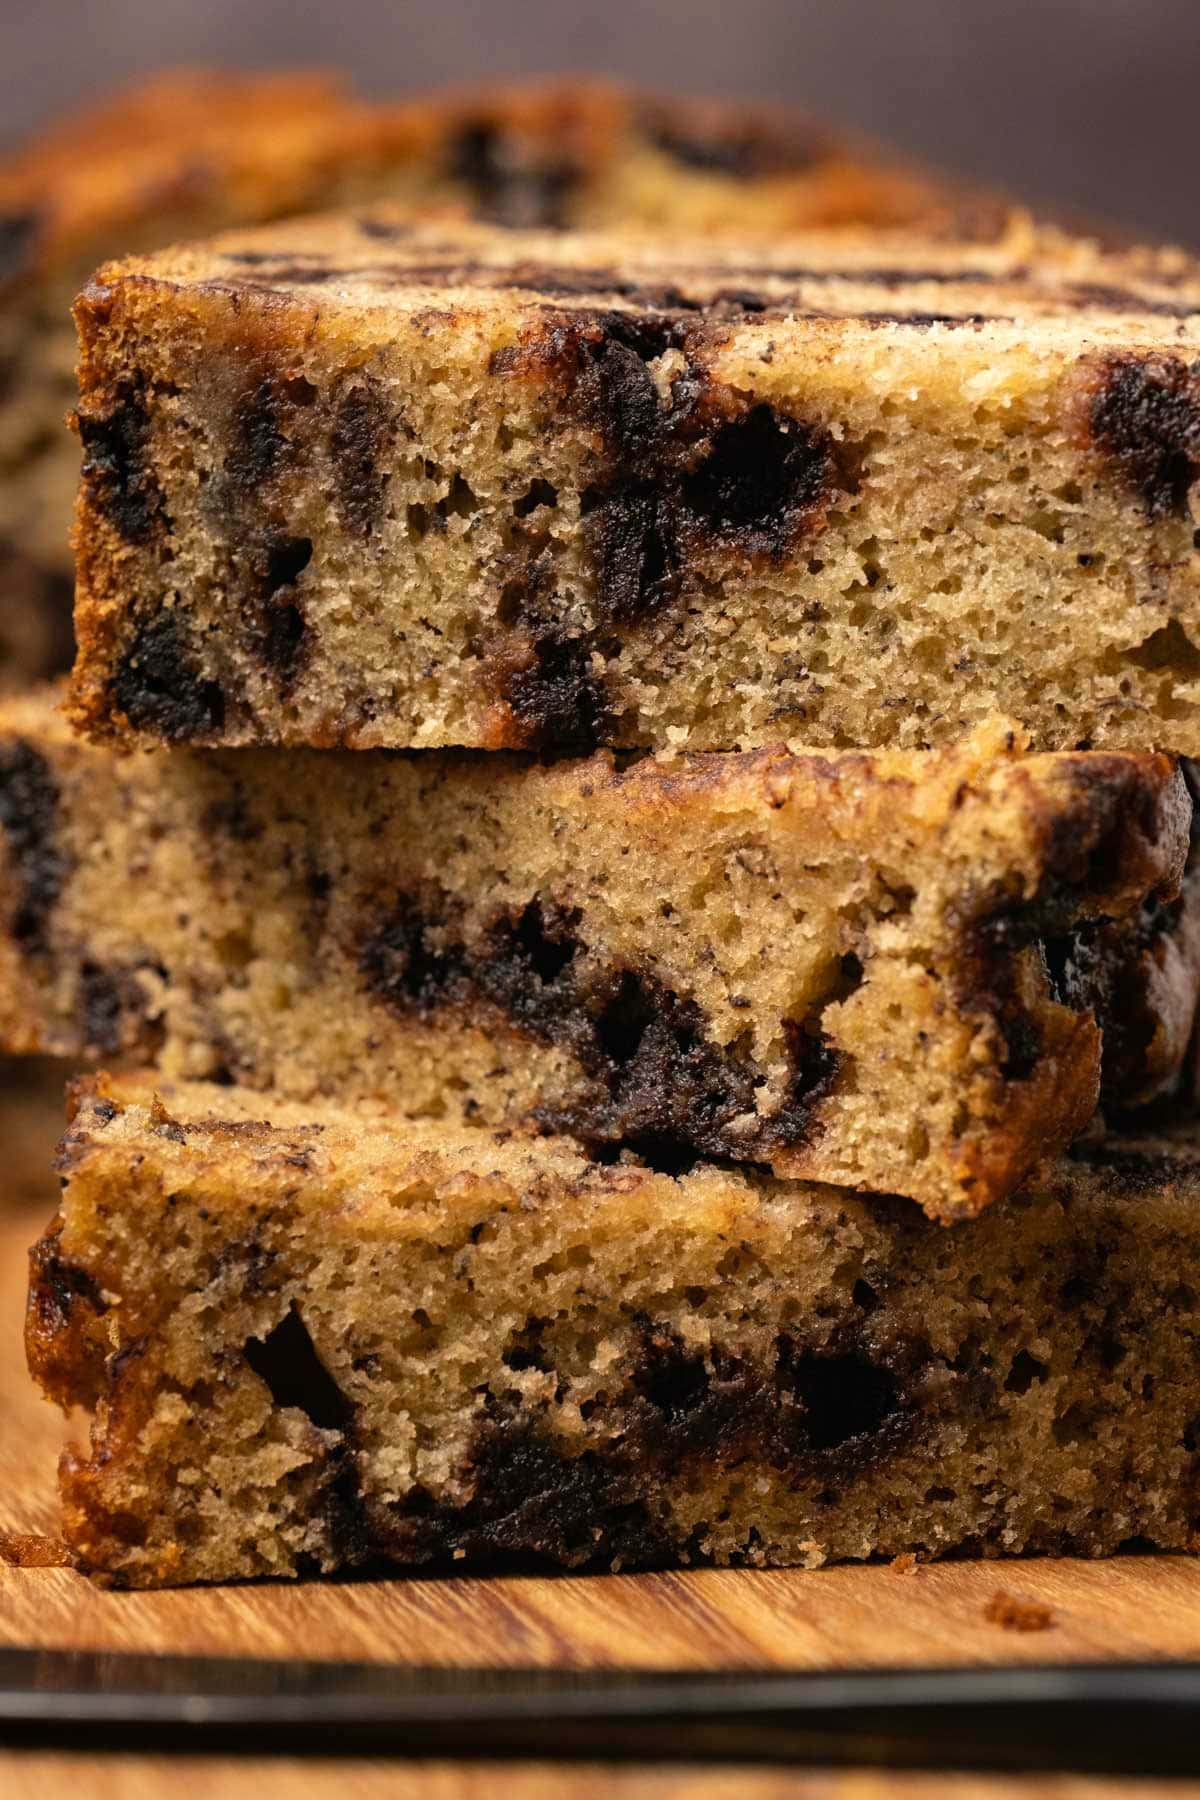 Slices of chocolate chip banana bread cut in half and stacked up.